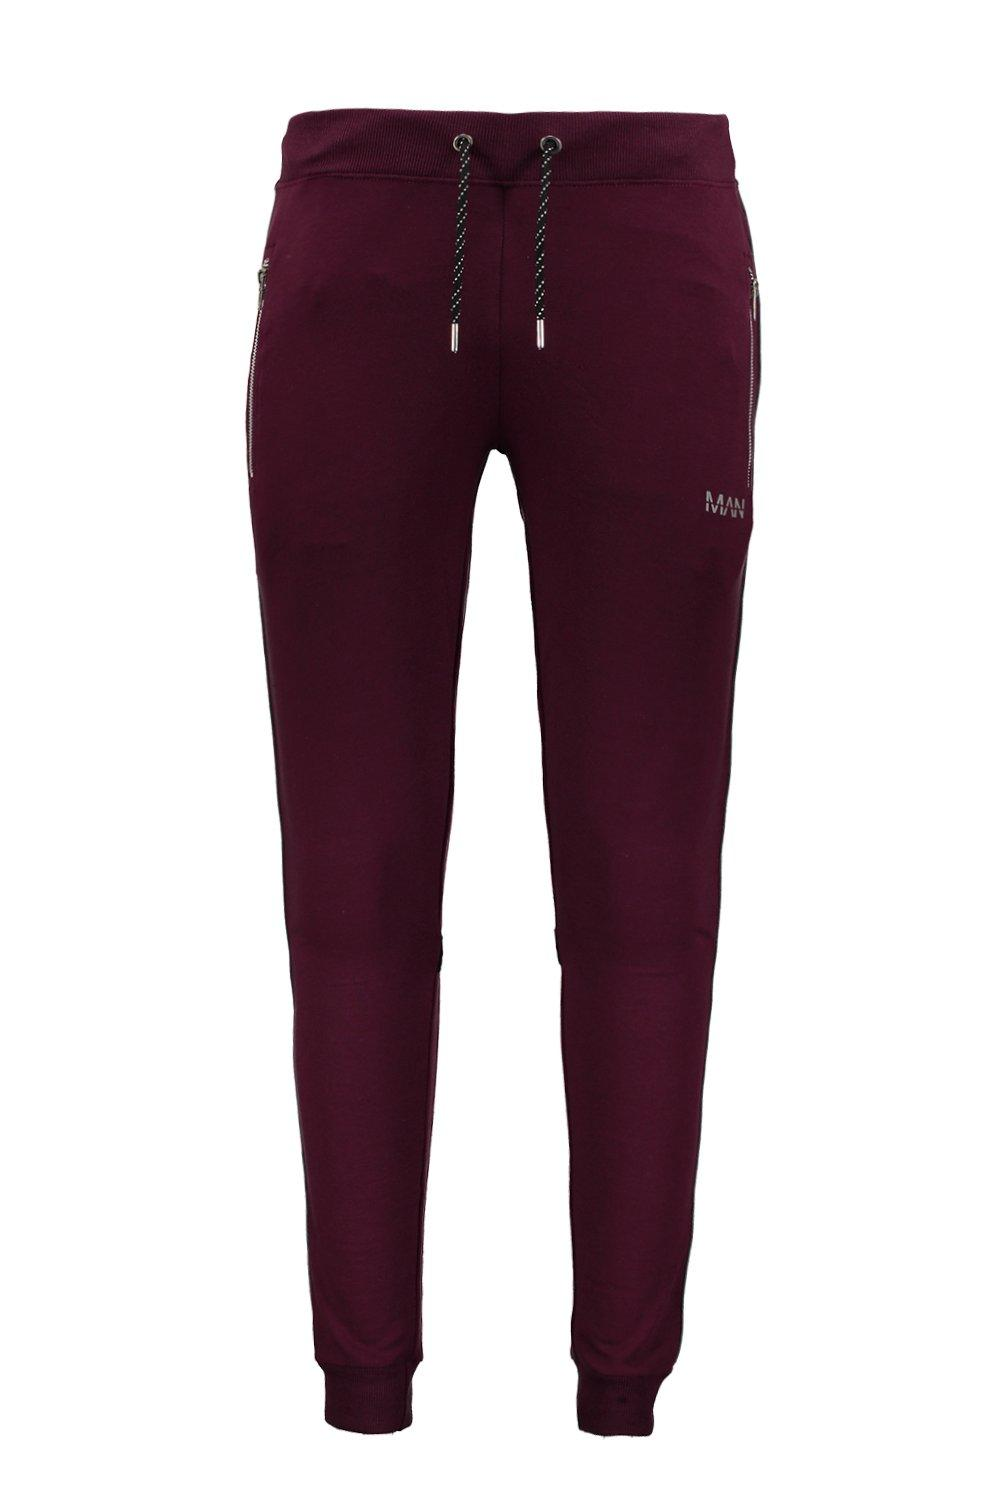 With Muscle Jogger Reflective wine Piping Fit zxwZnE